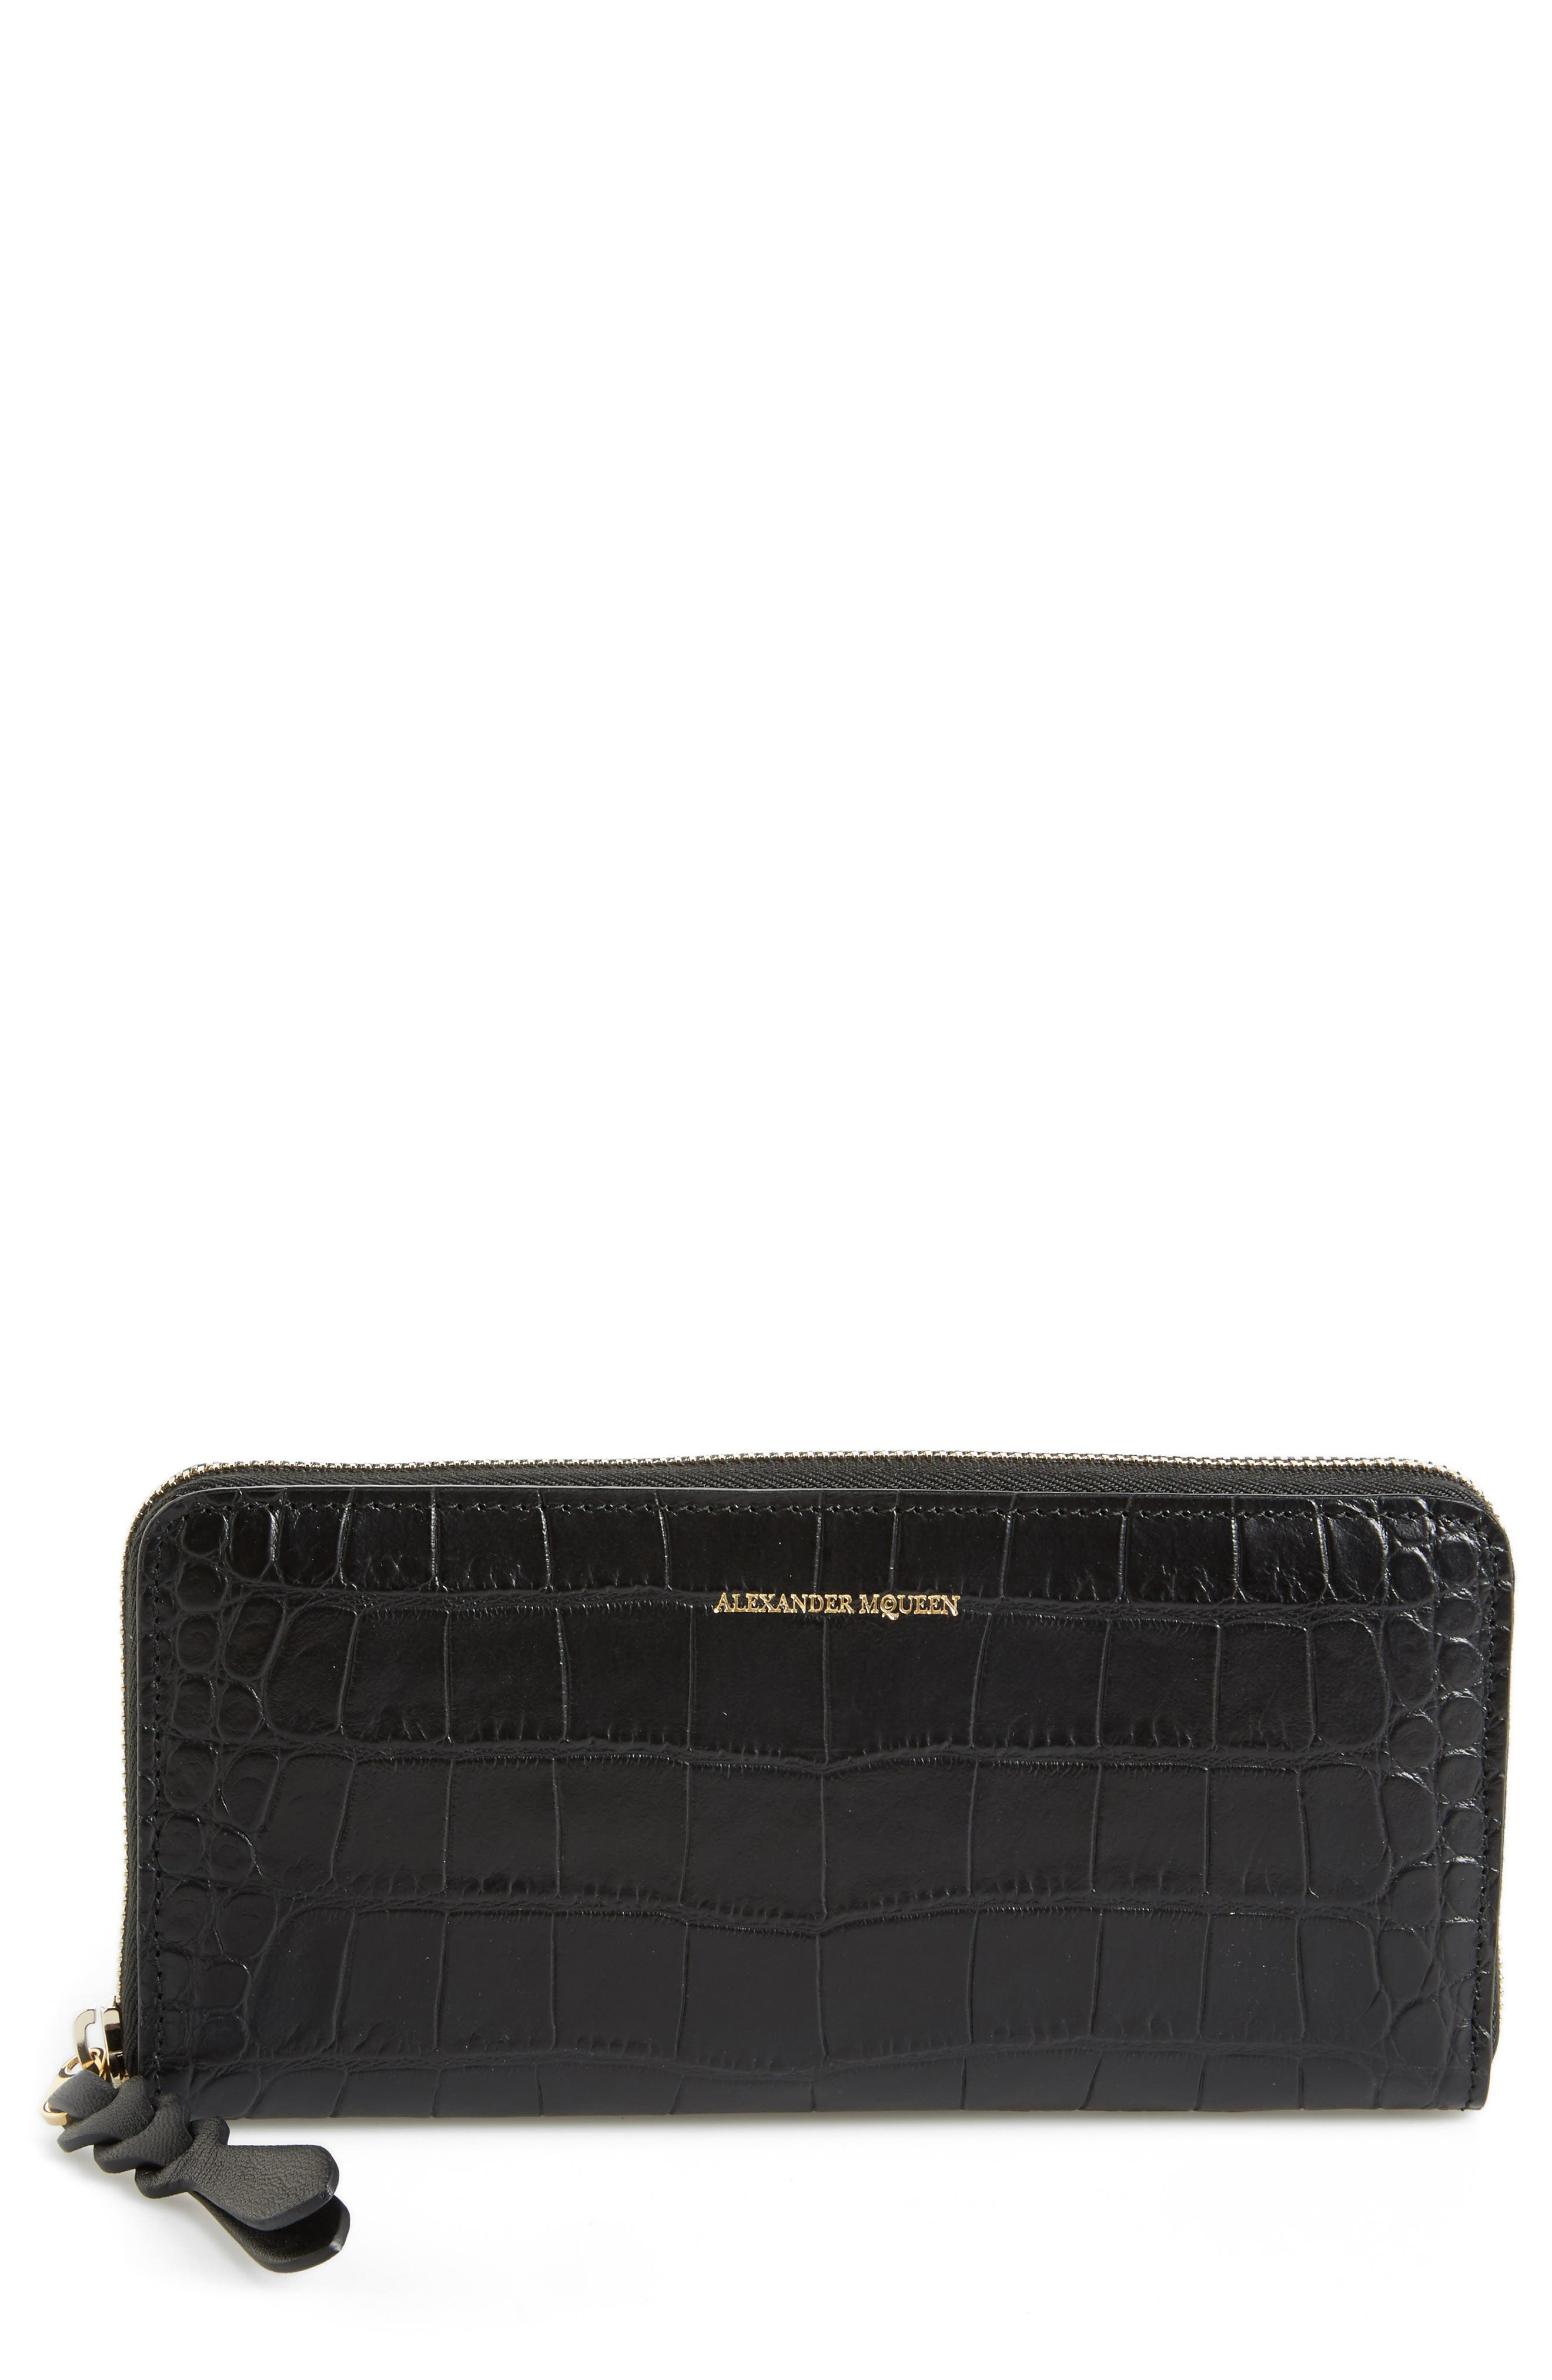 Croc-Embossed Leather Zip Around Wallet,                         Main,                         color, Black